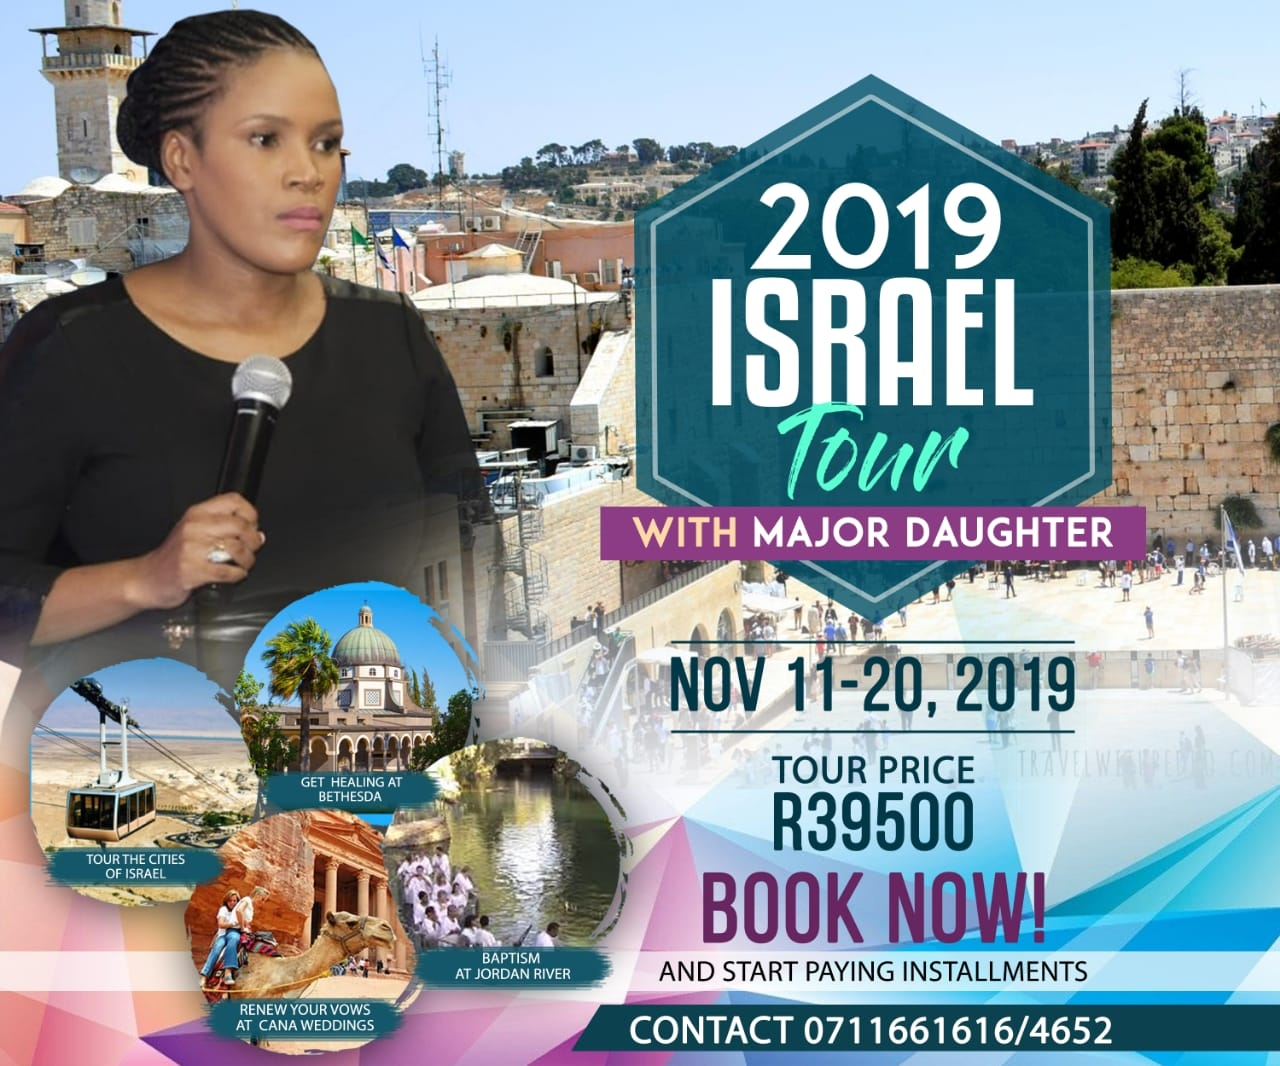 Visit the lands of the Bible with Major Daughter — Advertorial